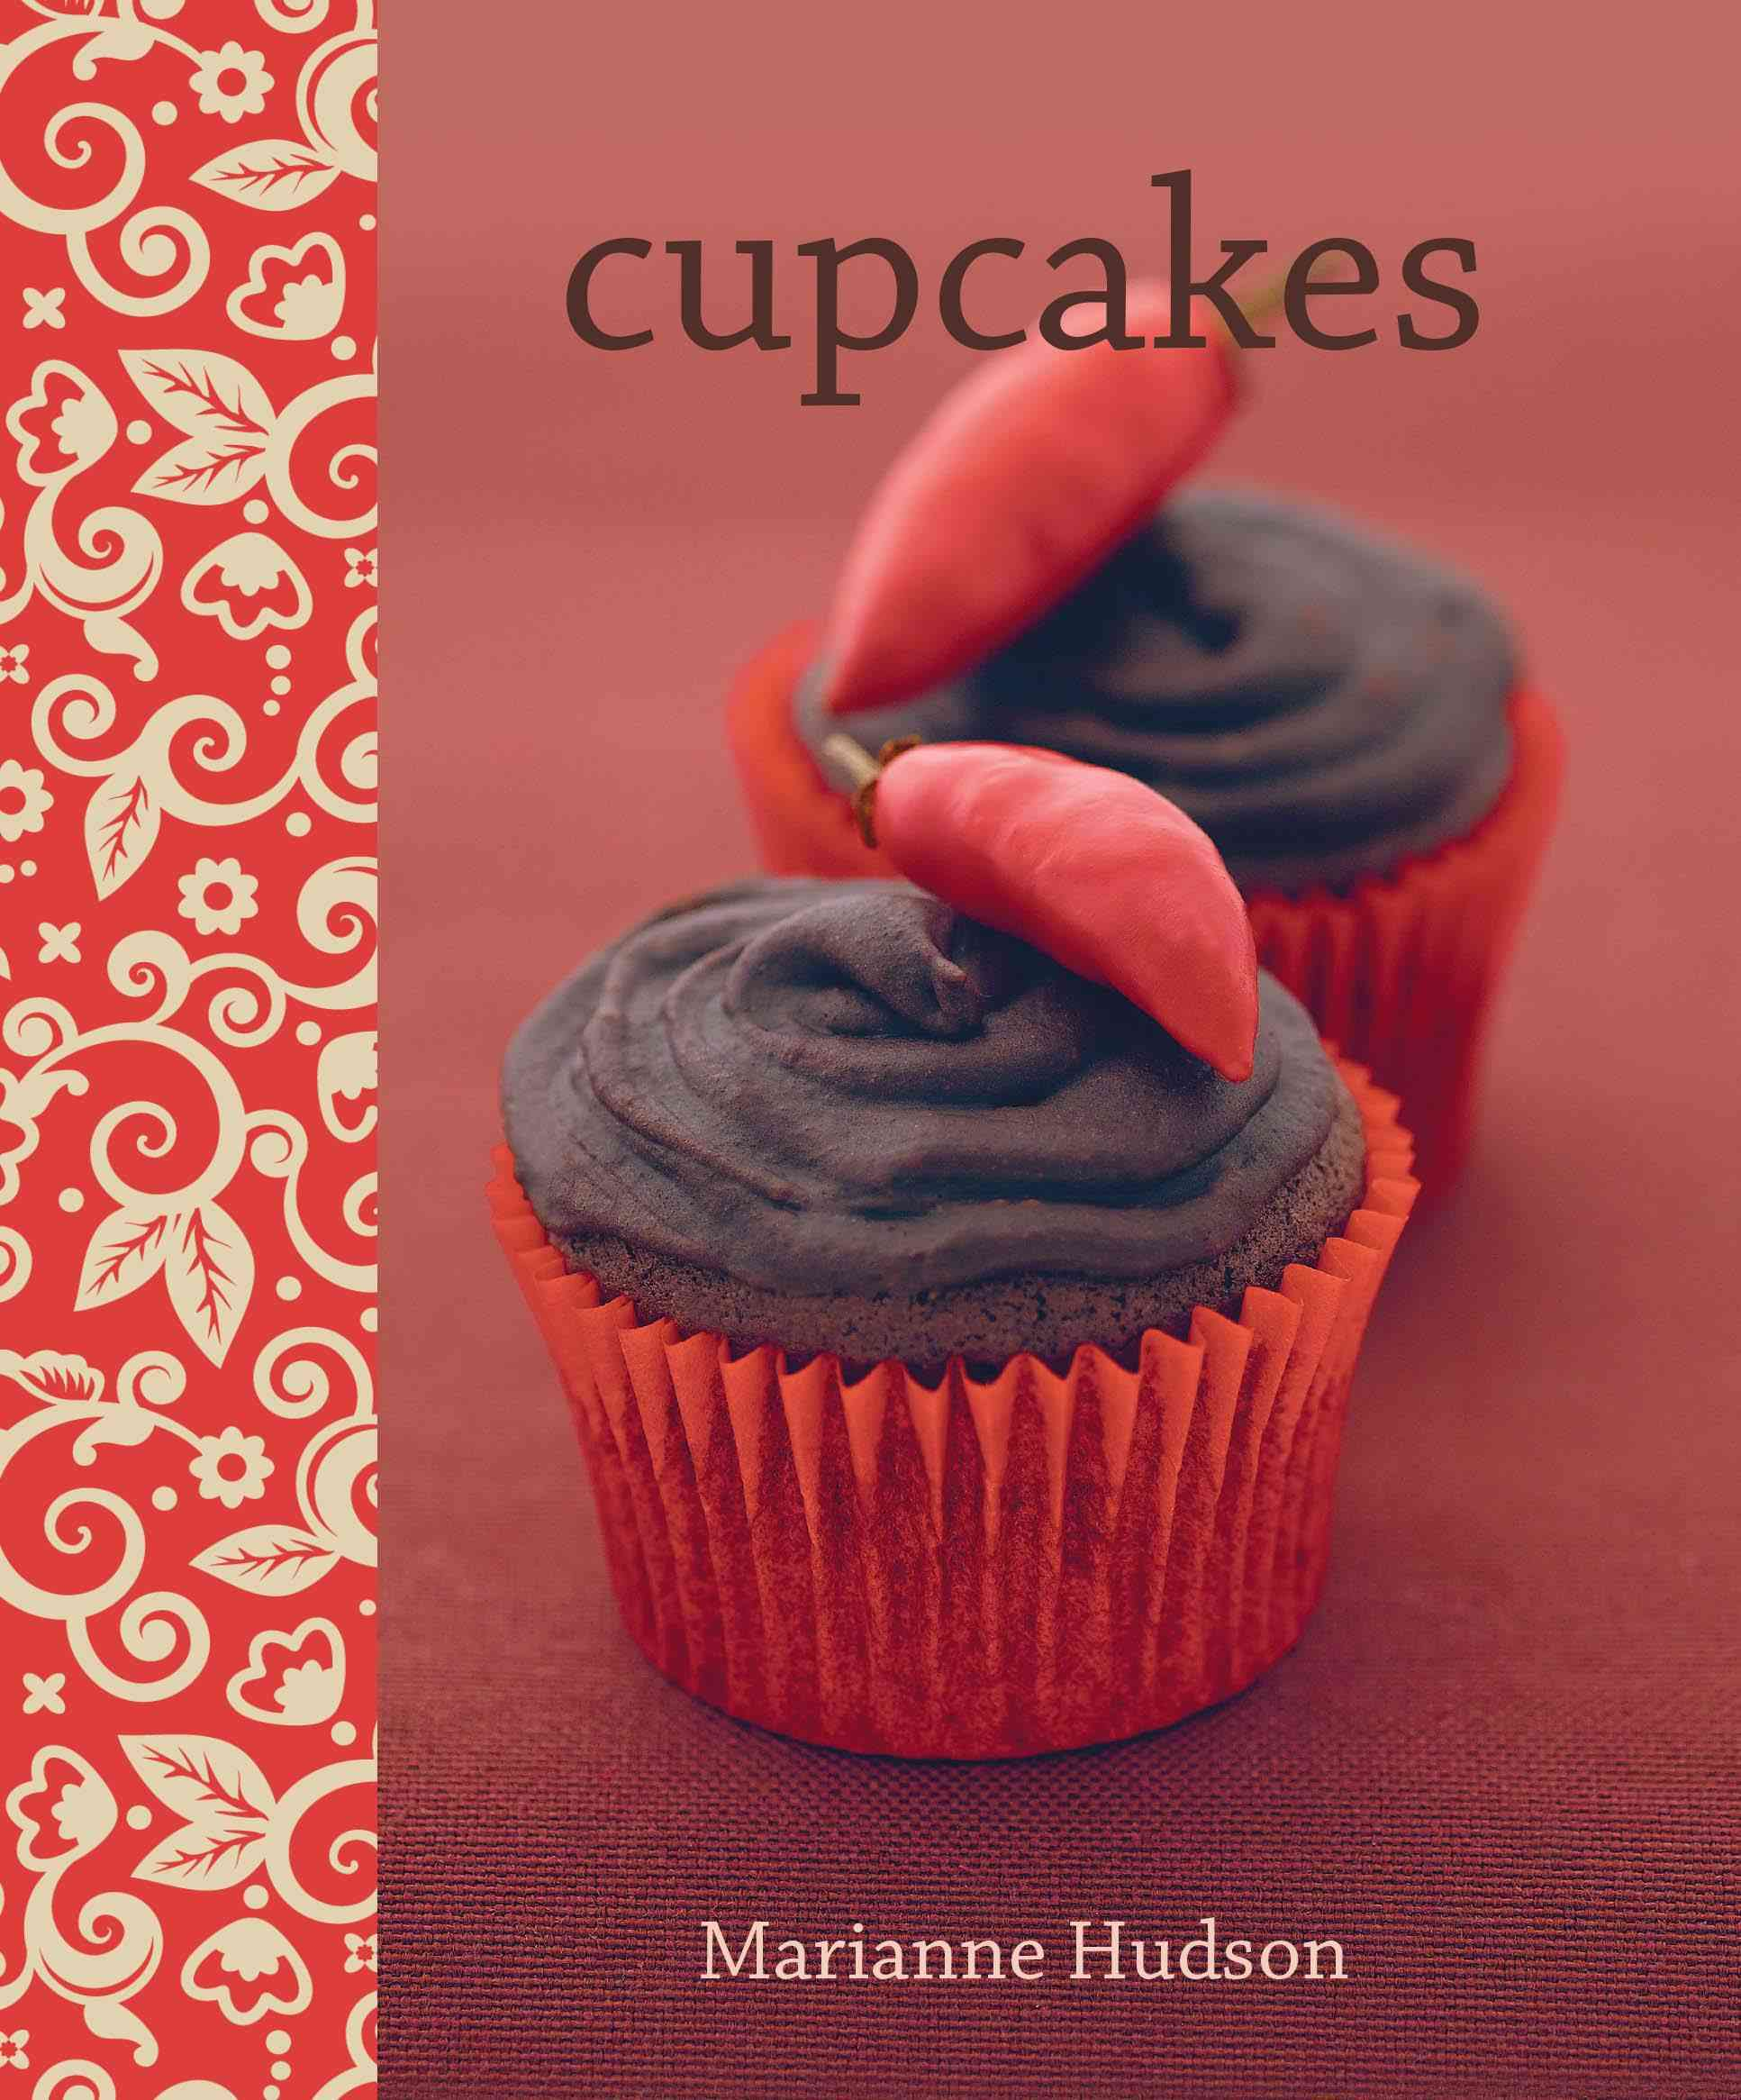 Cupcakes (Hardcover)